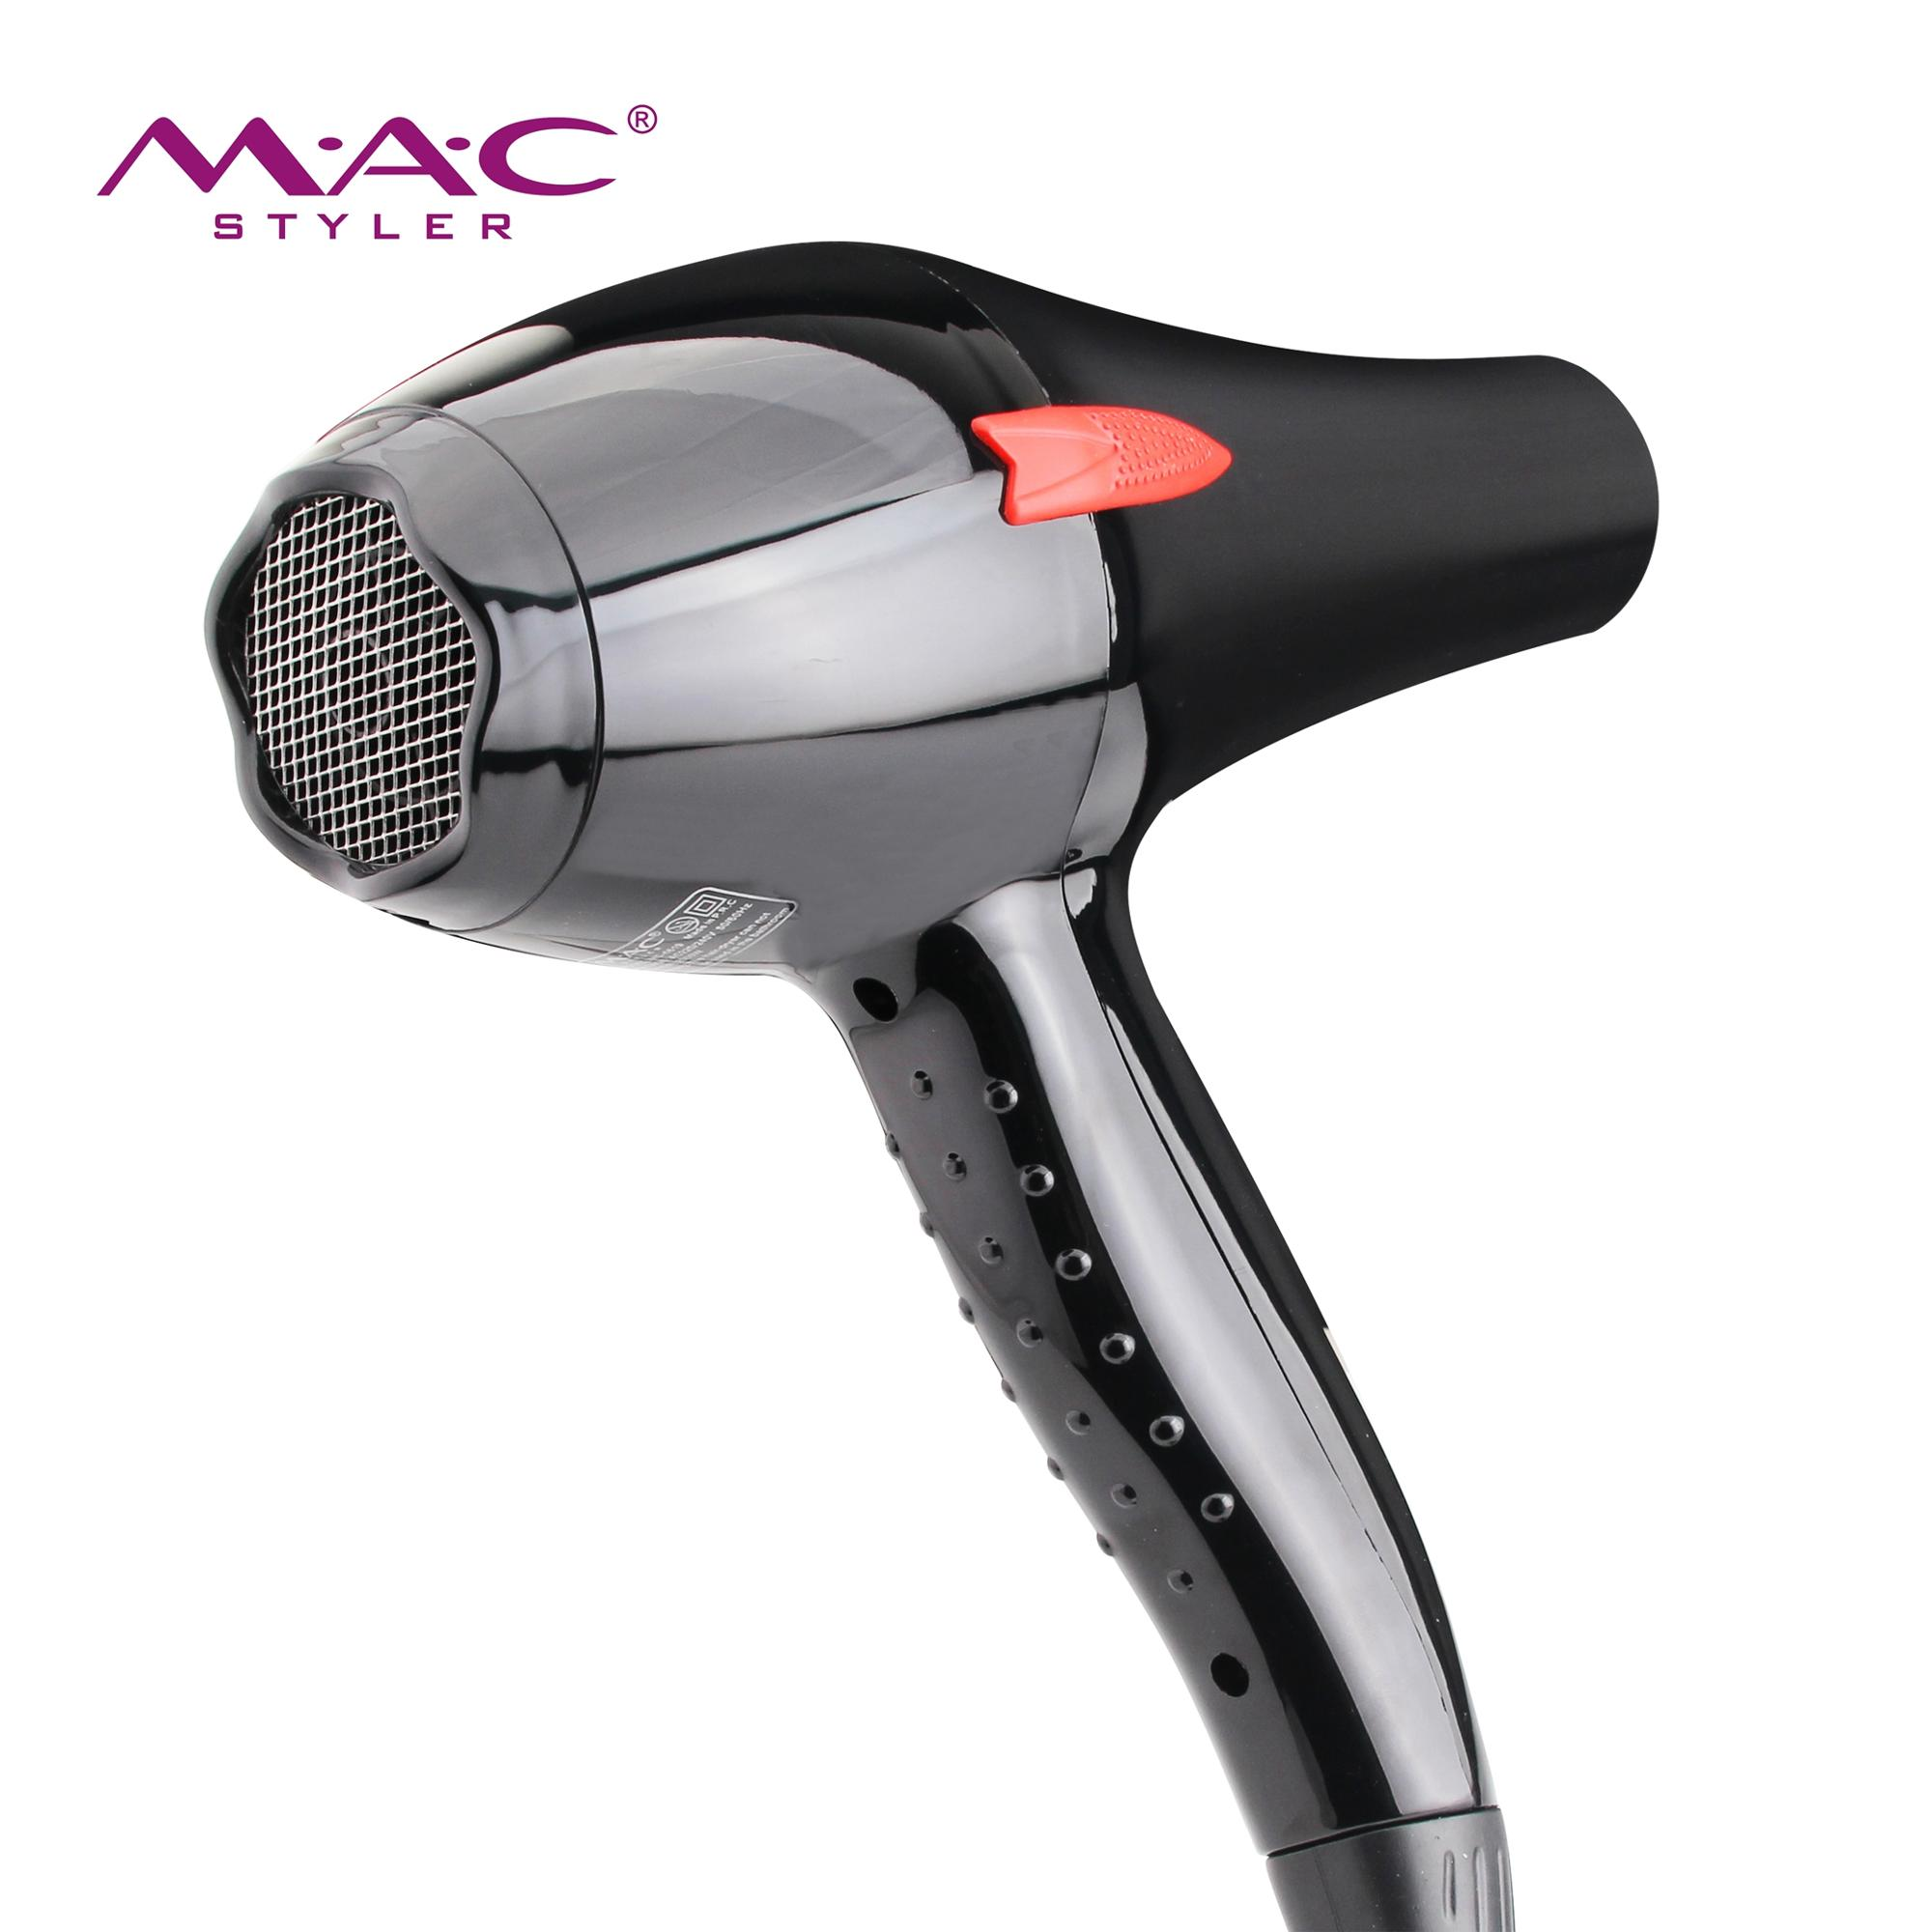 Two Speeds and Three Heat Settings for fast drying and styling high quality blow dryer